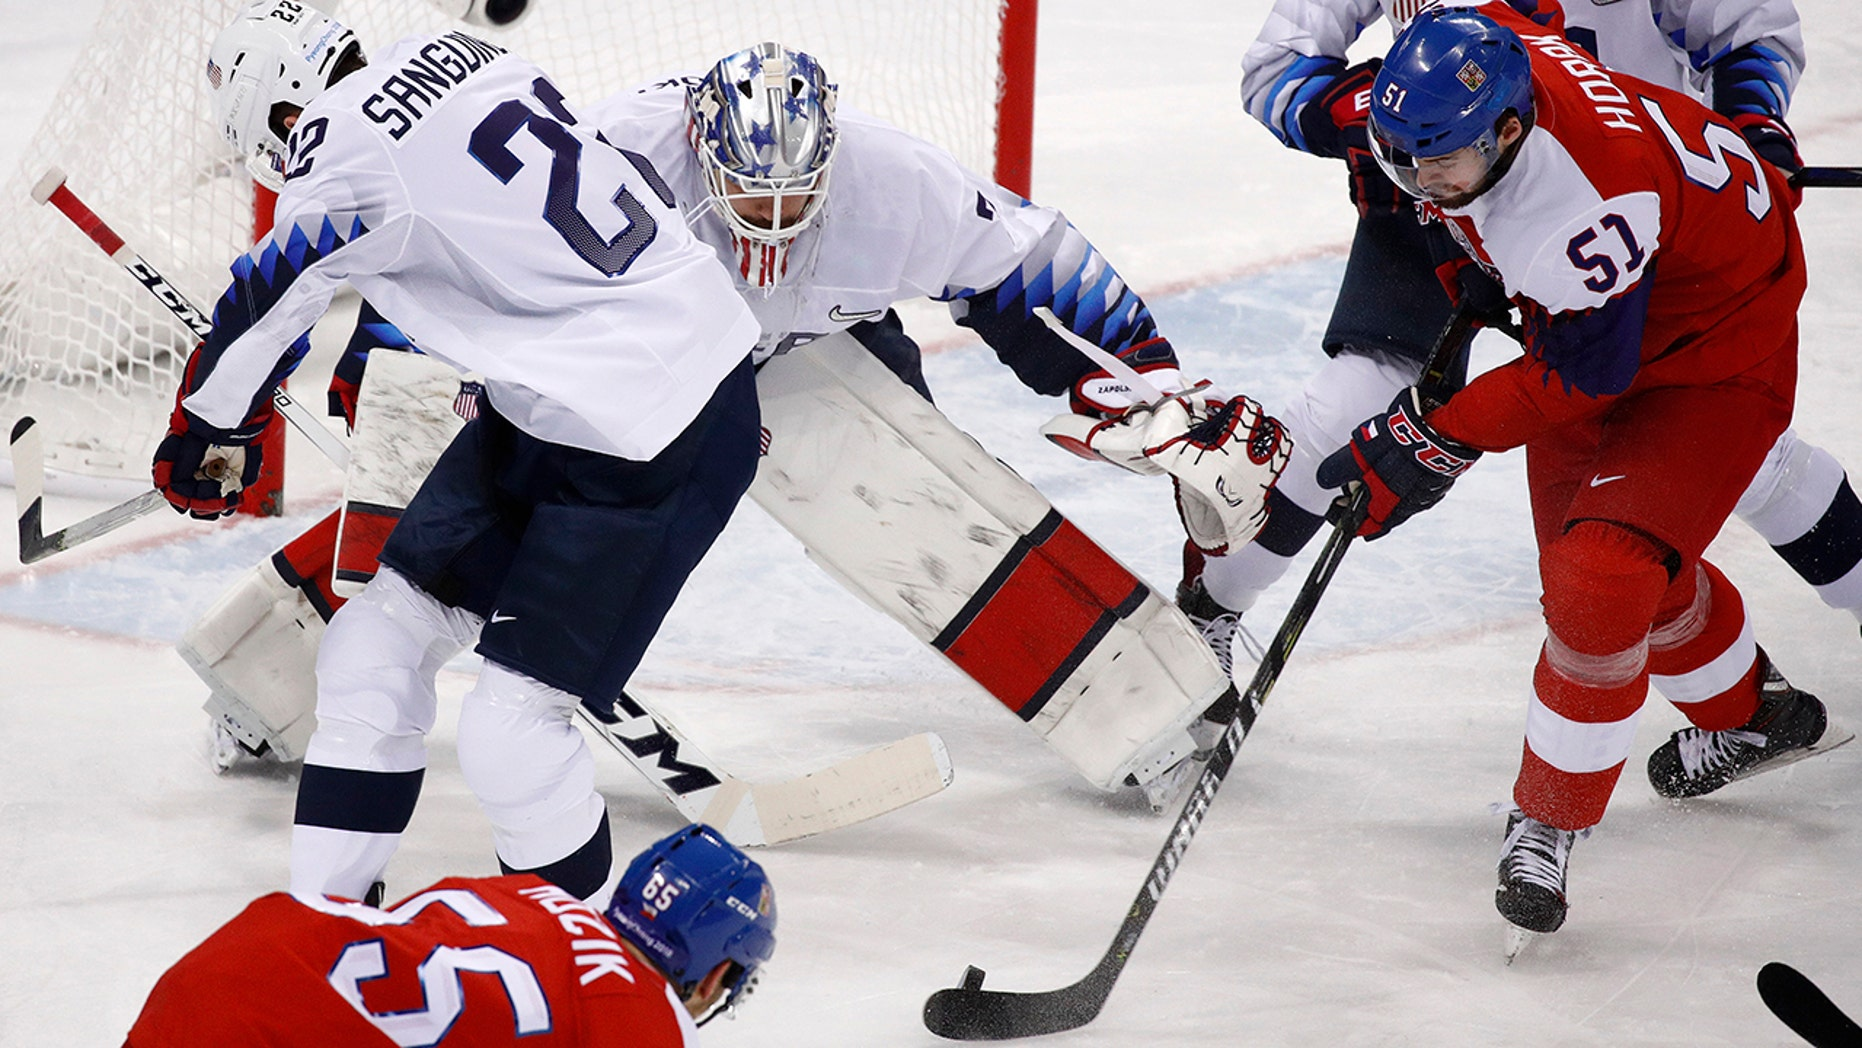 Roman Horak (51), of the Czech Republic, takes a shot at goalie Ryan Zapolski (30), of the United States, during the first period of the quarterfinal round of the men's hockey game at the 2018 Winter Olympics in Gangneung, South Korea, Wednesday, Feb. 21, 2018. (AP Photo/Jae C. Hong)